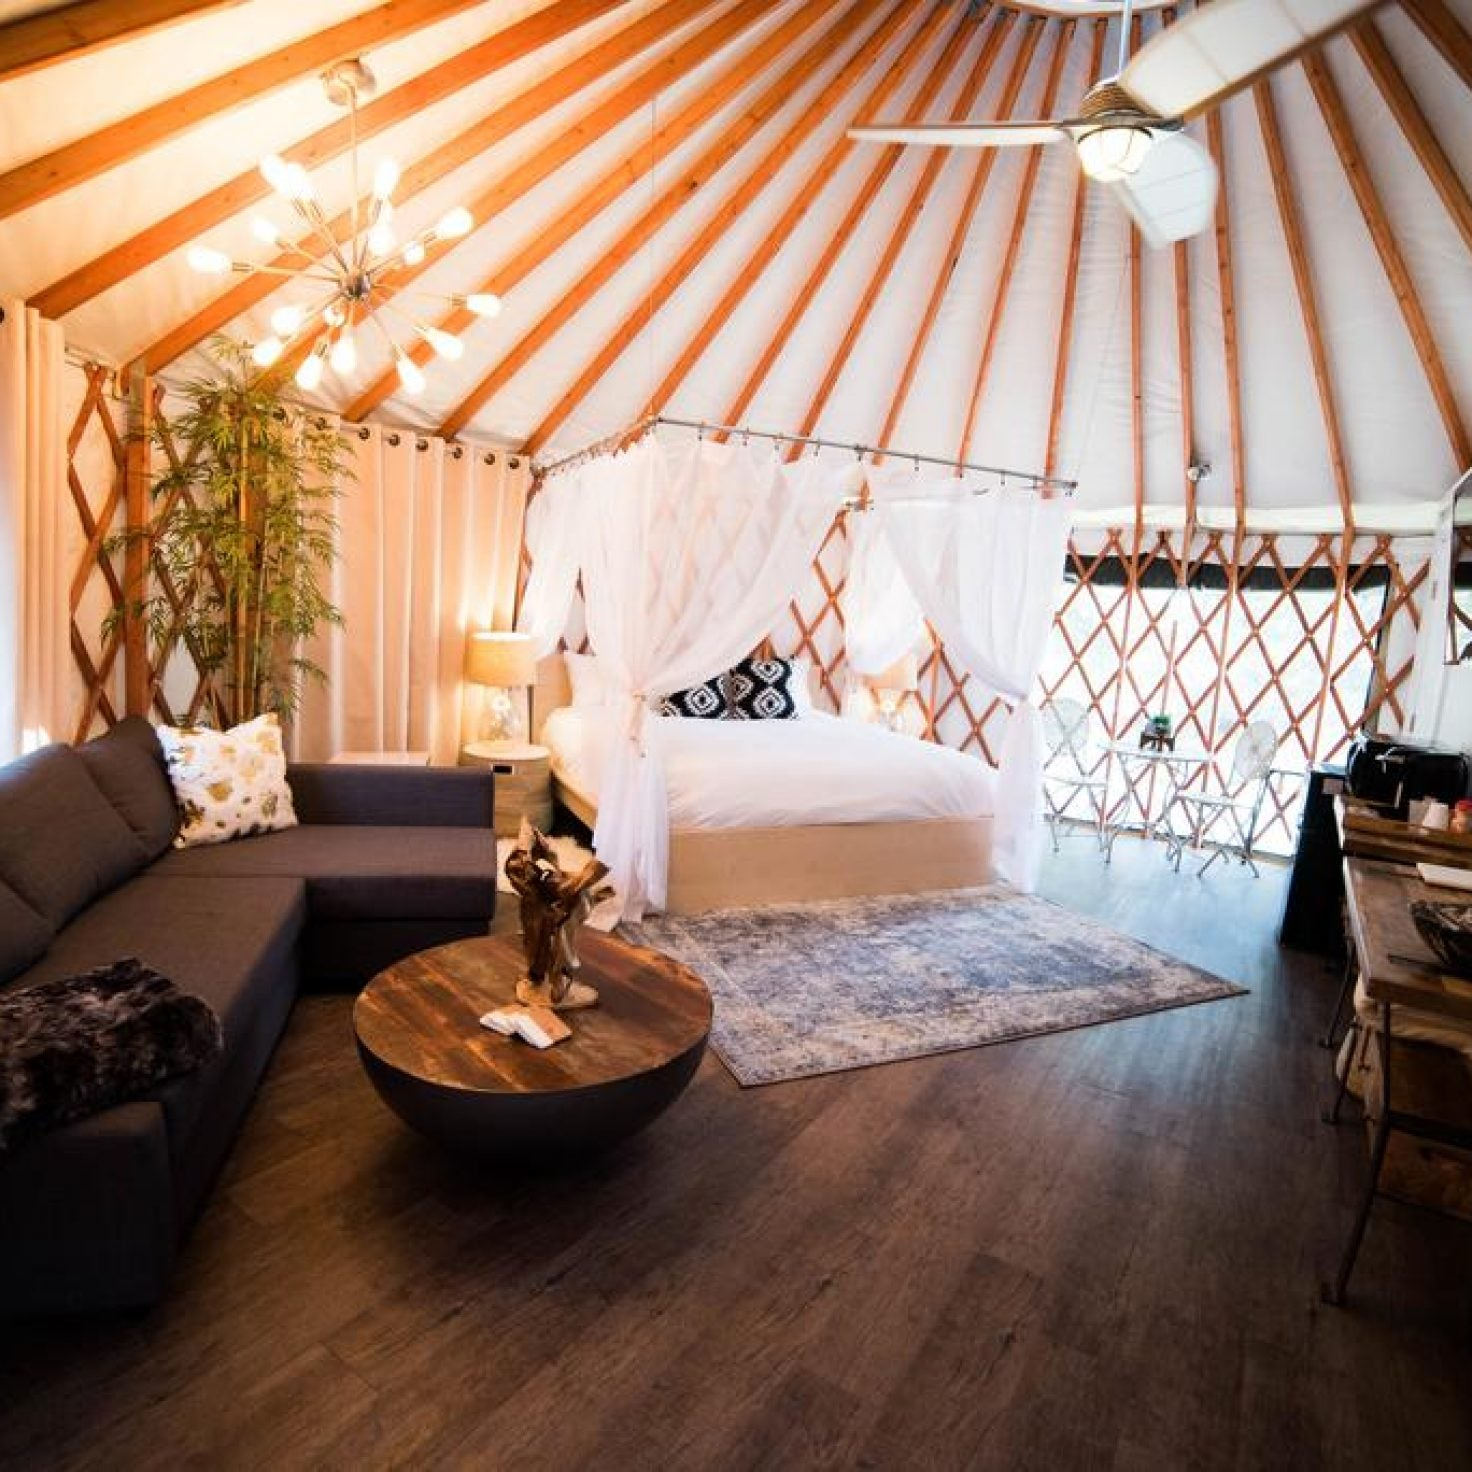 Gone Glamping! 5 Luxury Camping Destinations You Must Experience